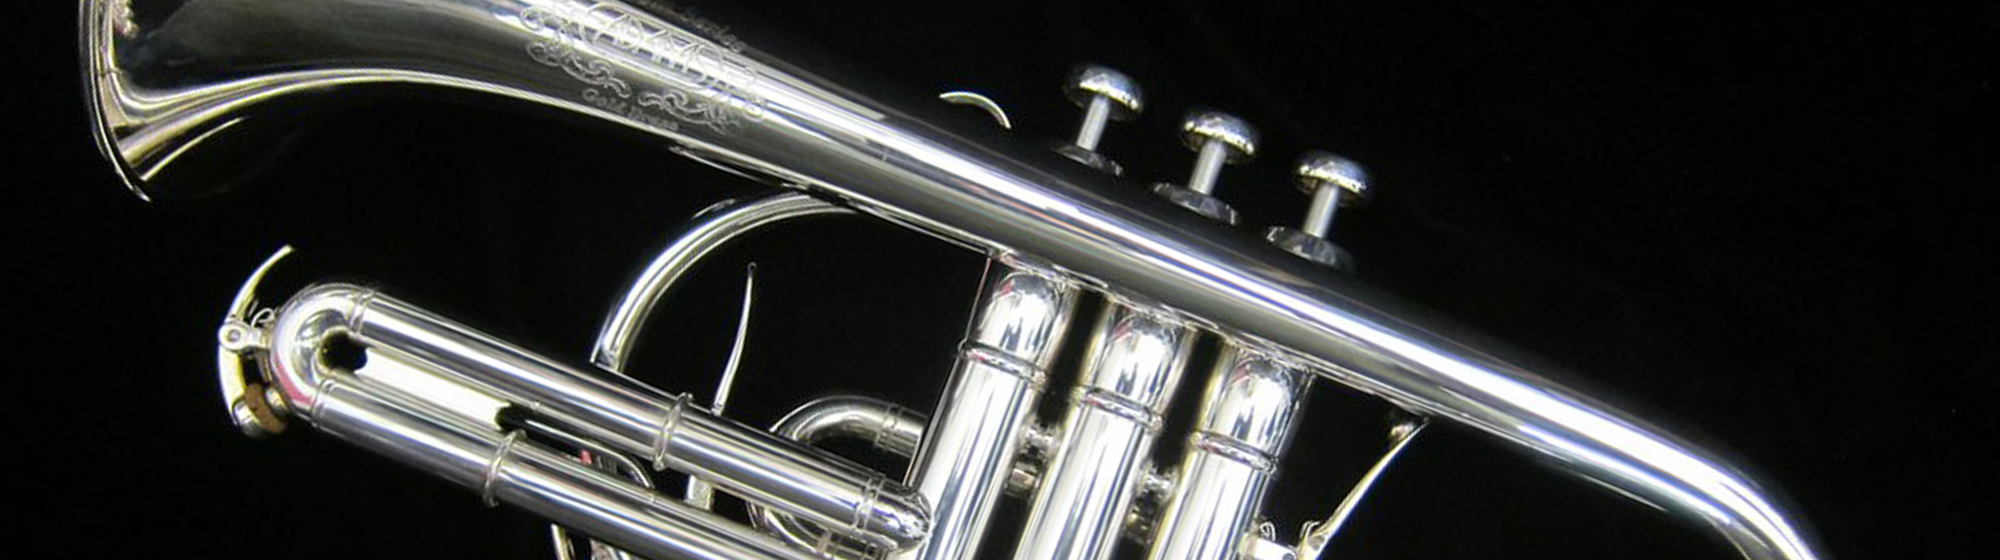 Donate that old band instrument in your closet to a kid.